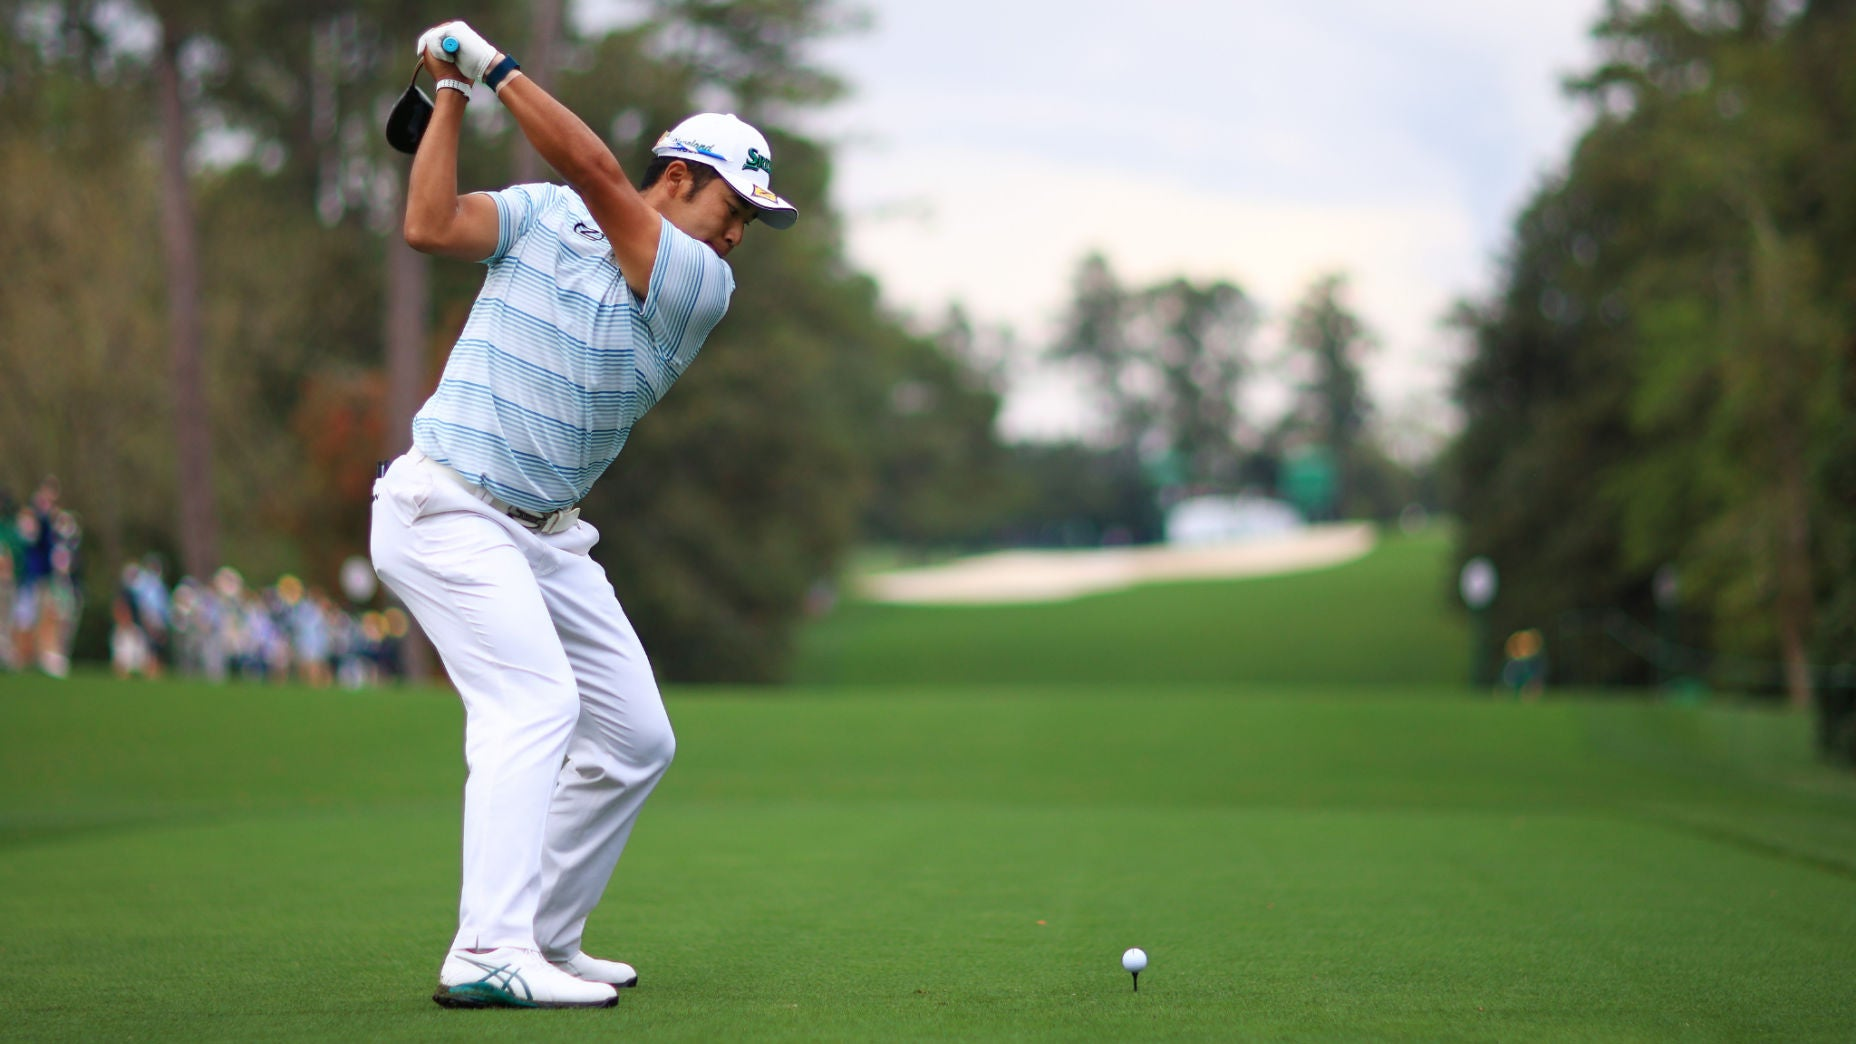 Why does Hideki Matsuyama 'pause' so much in his backswing?